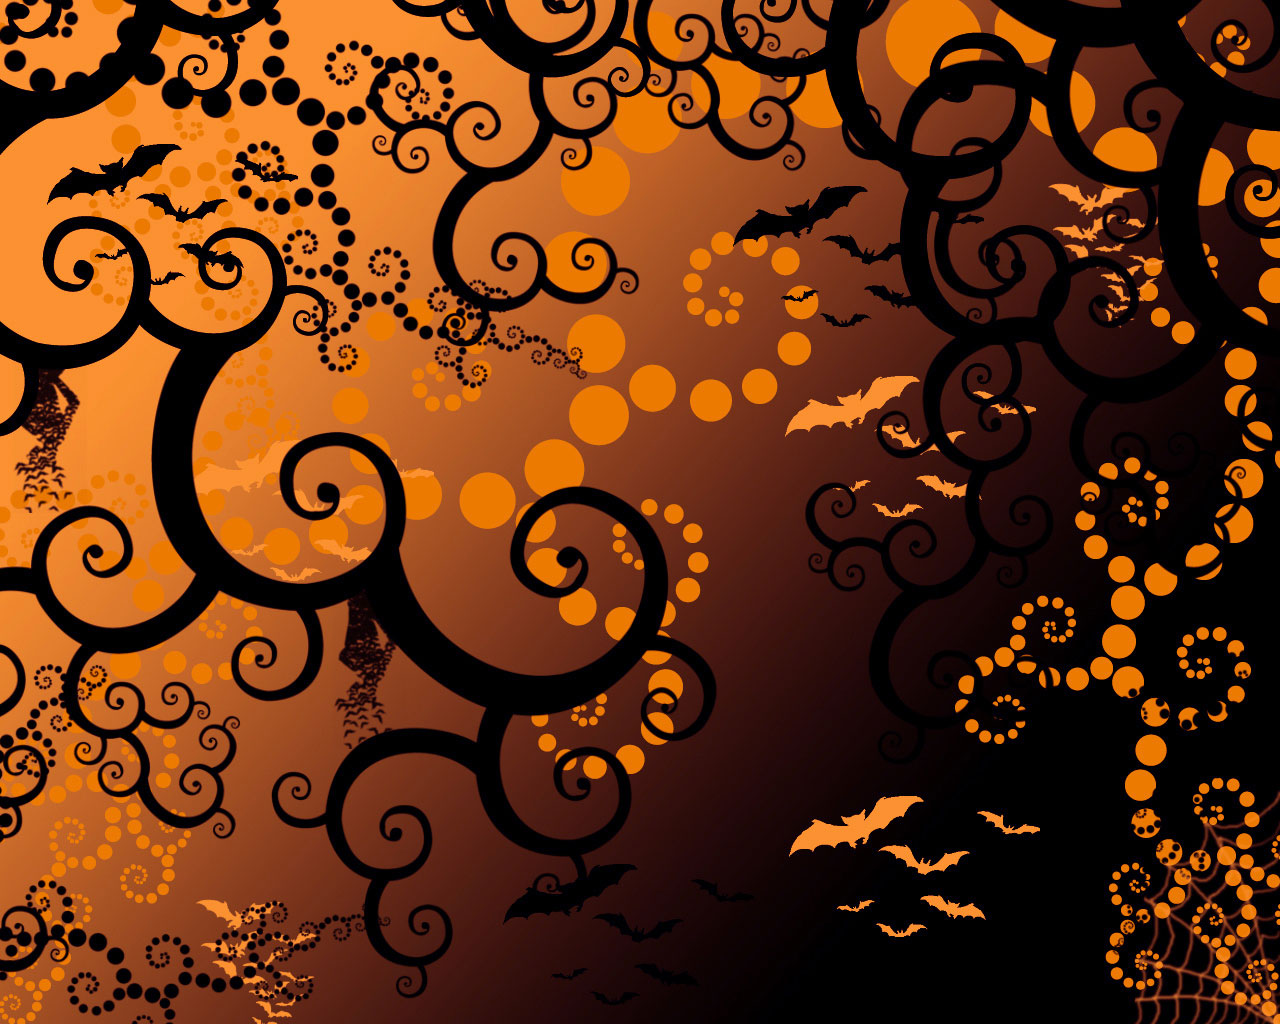 presented by minnies_meen 2553 10 30 free background free download wallpaper free wallpaper halloween halloween background halloween wallpaper - Halloween Background Images Free